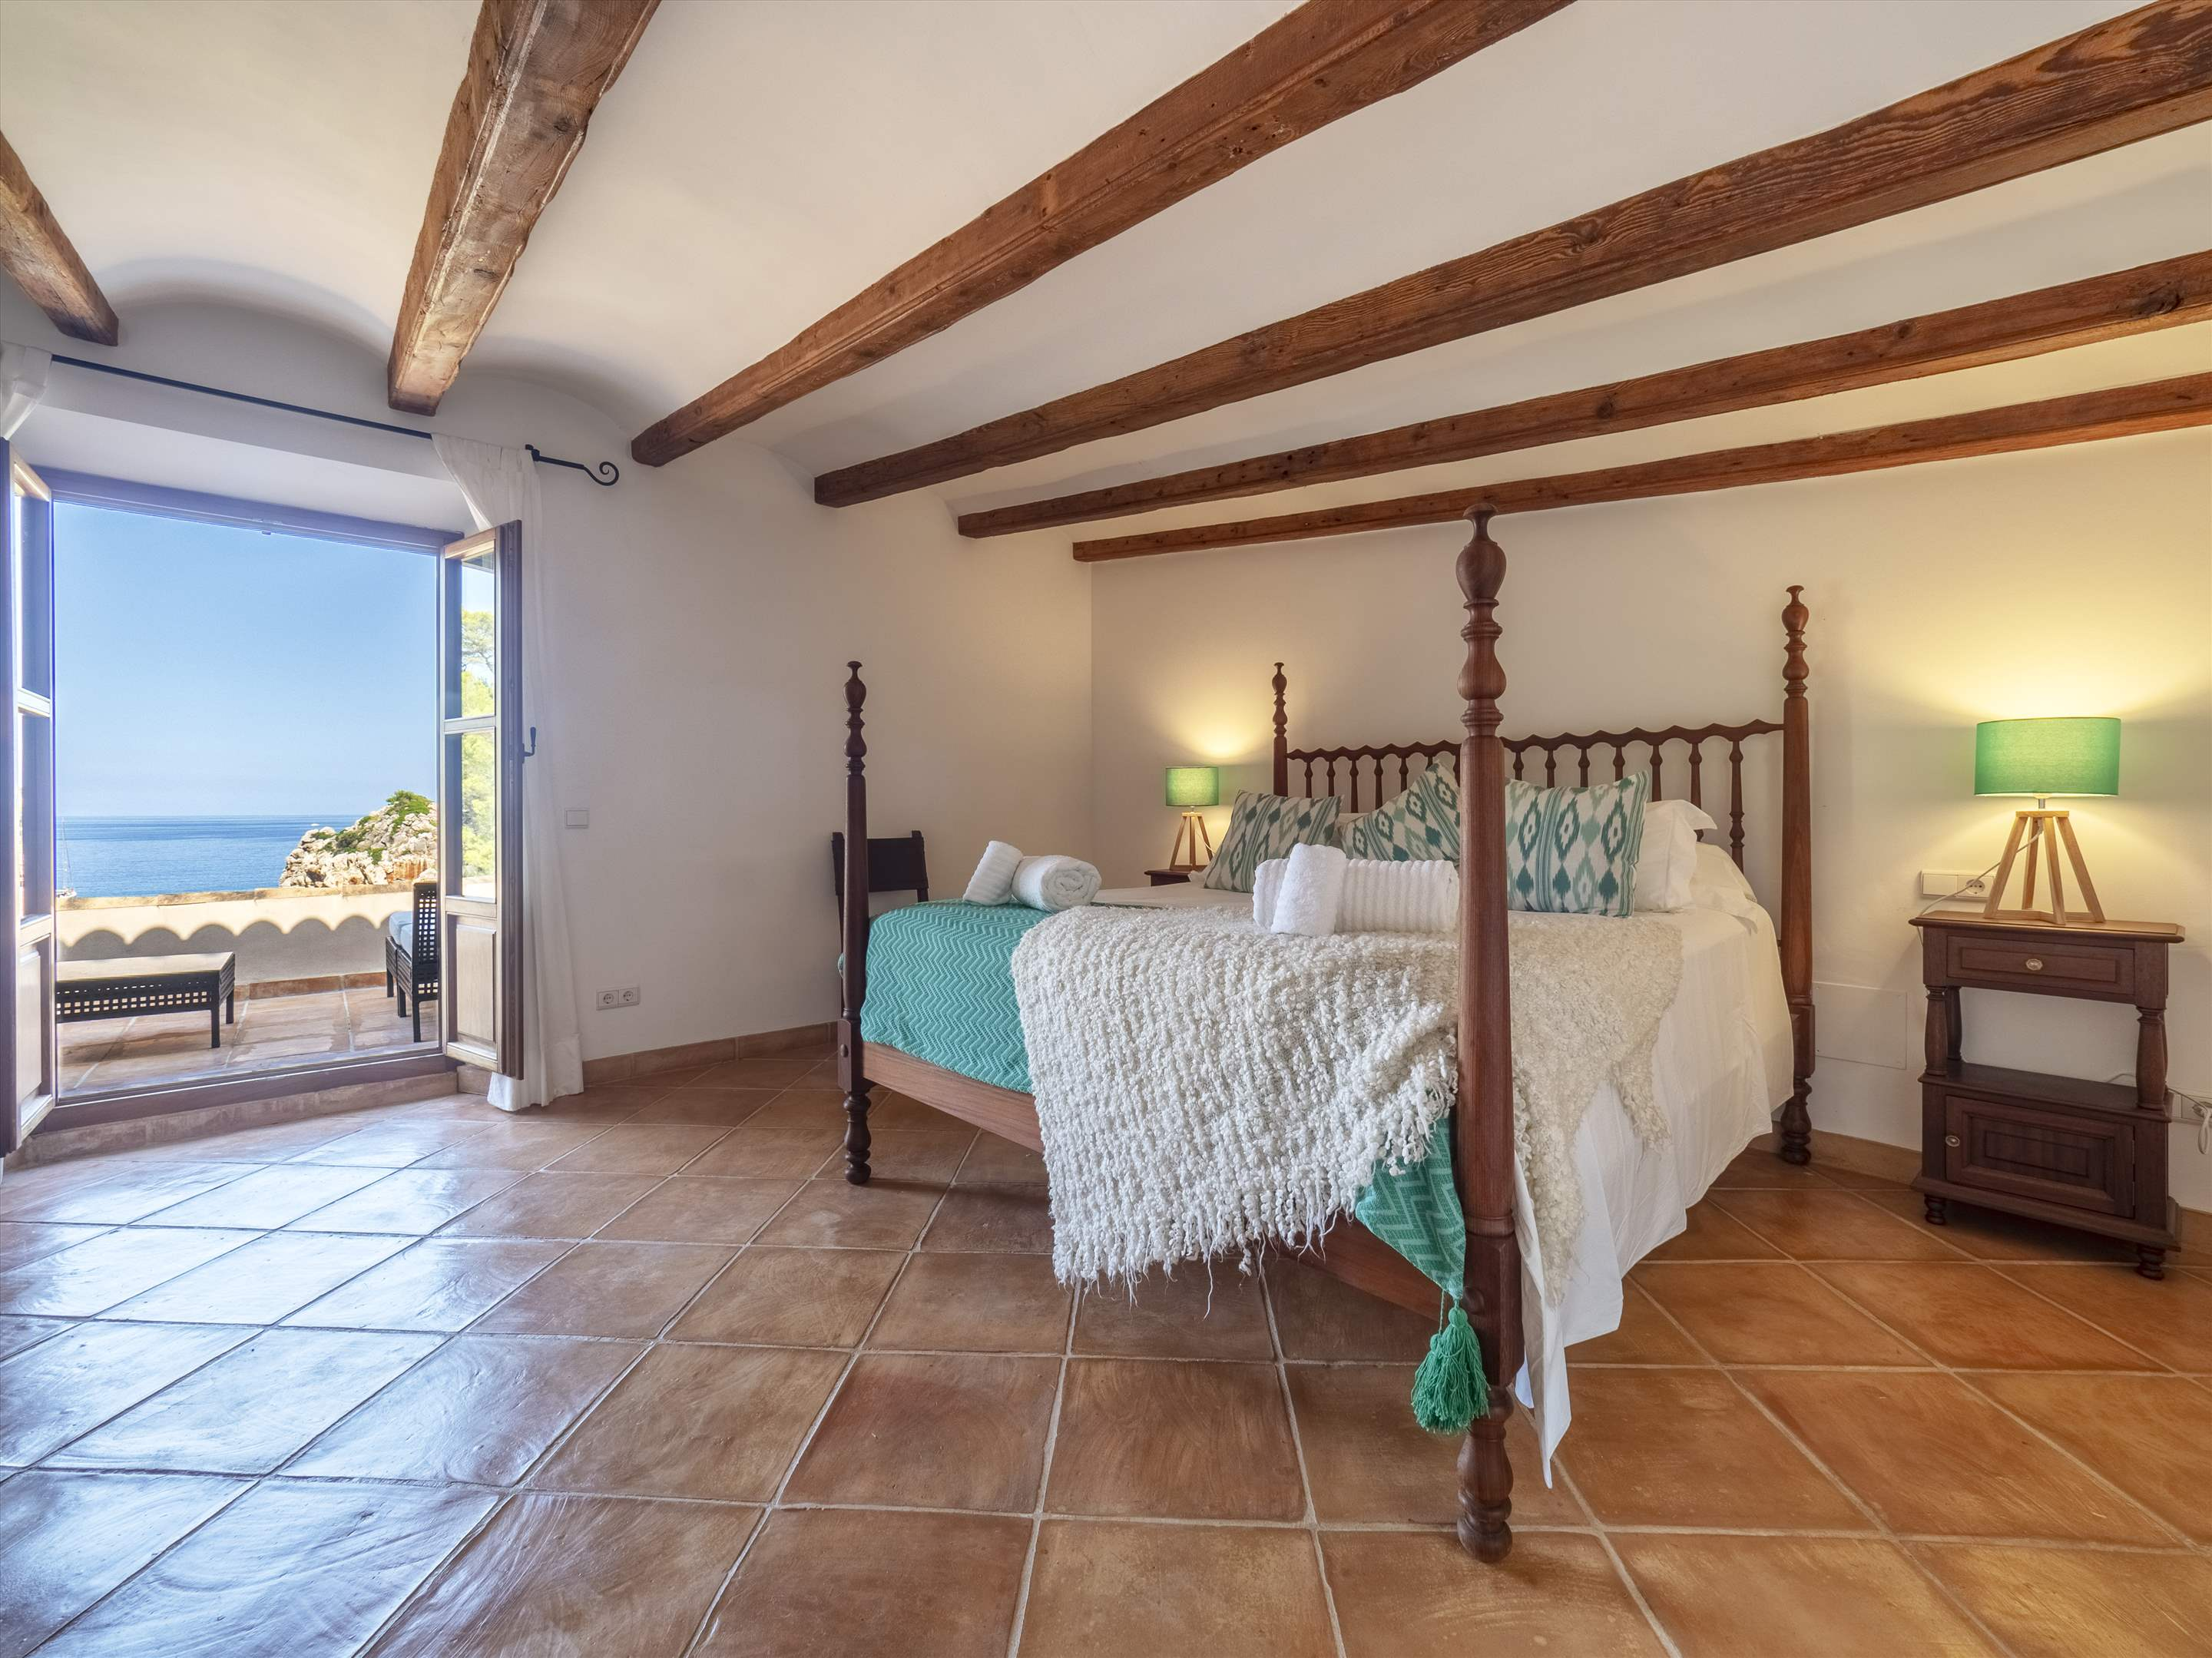 Sa Cala, 4 bedroom villa in Soller & Deia, Majorca Photo #21